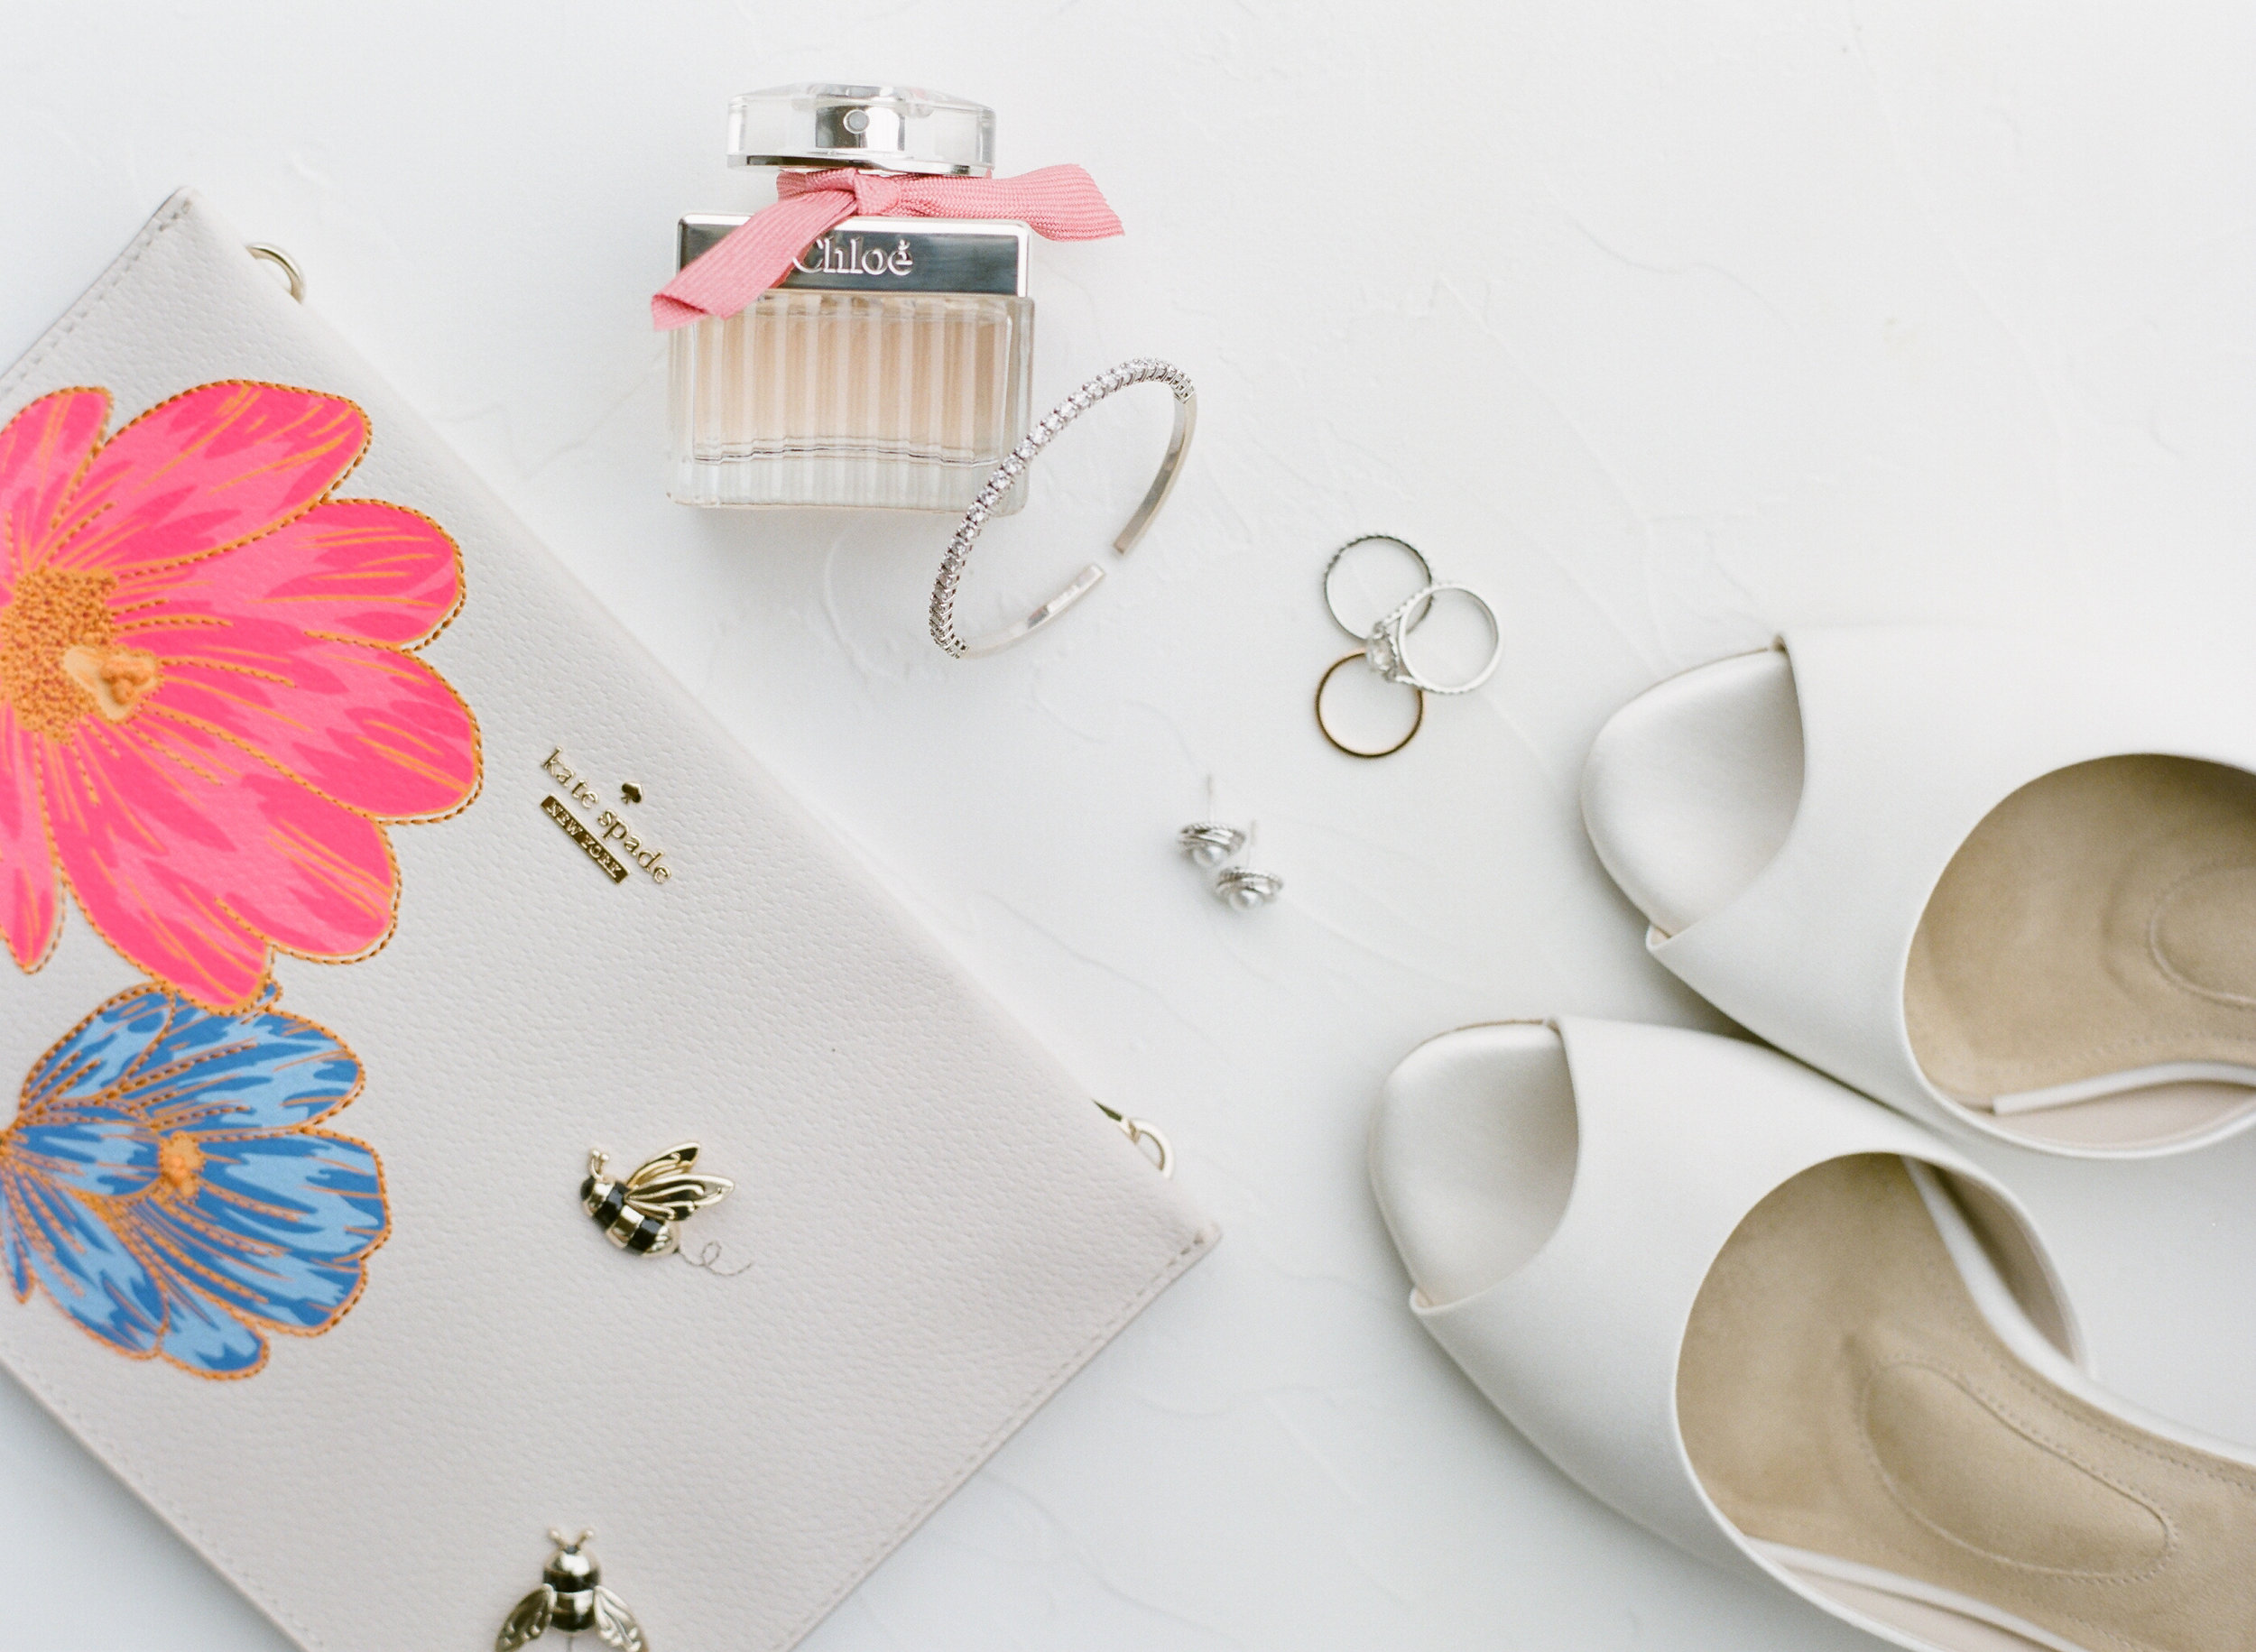 Kate Spade wedding clutch playful and colorful